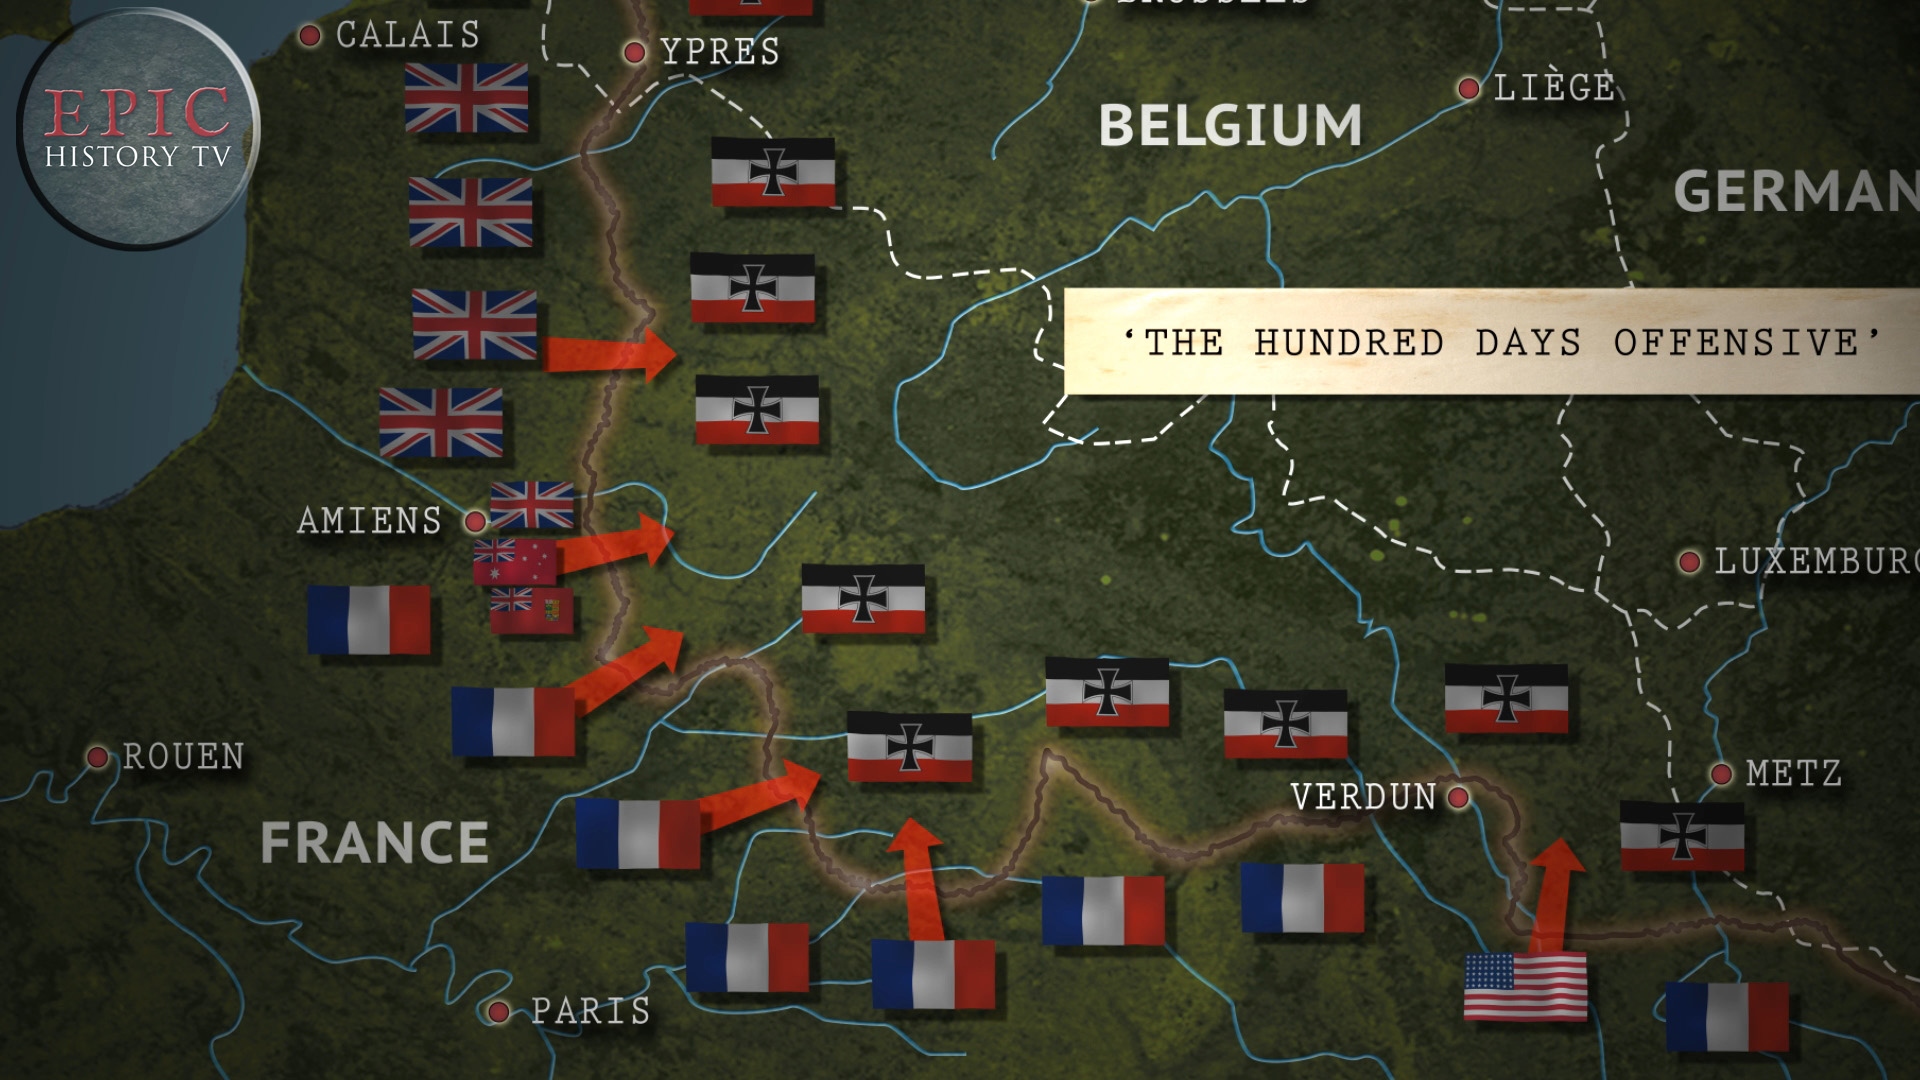 The Hundred Days Offensive was the final Allied offensive against the German army on the Western Front in World War One. Beginning in August 1918, it finished only with Germany's surrender in November.  WATCH THE VIDEO